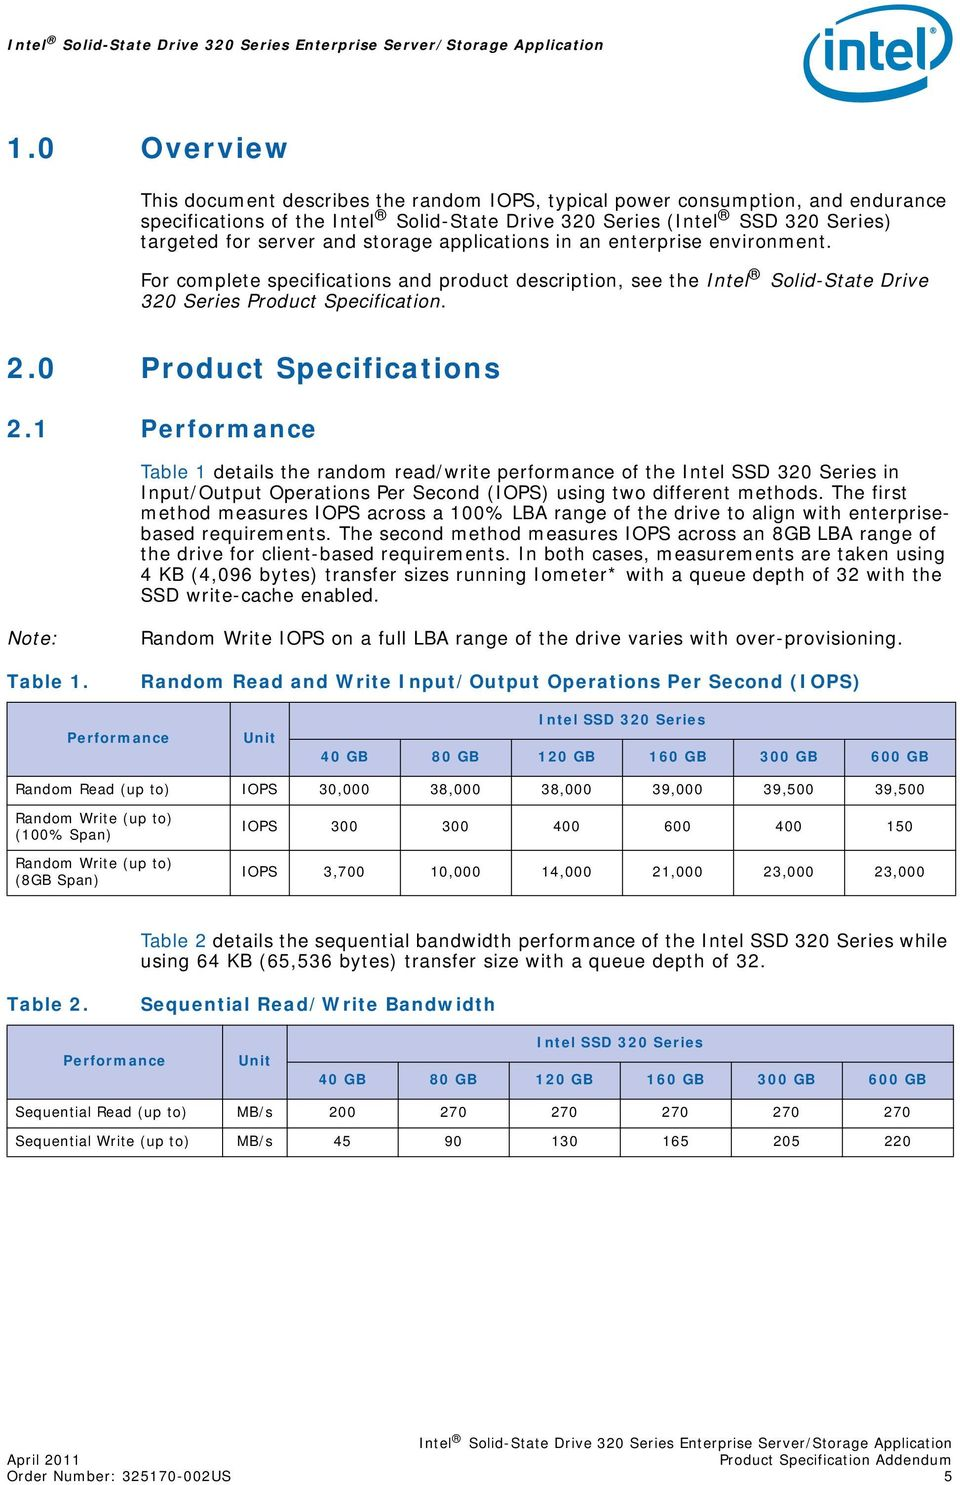 1 Performance Table 1 details the random read/write performance of the Intel SSD 320 Series in Input/Output Operations Per Second (IOPS) using two different methods.